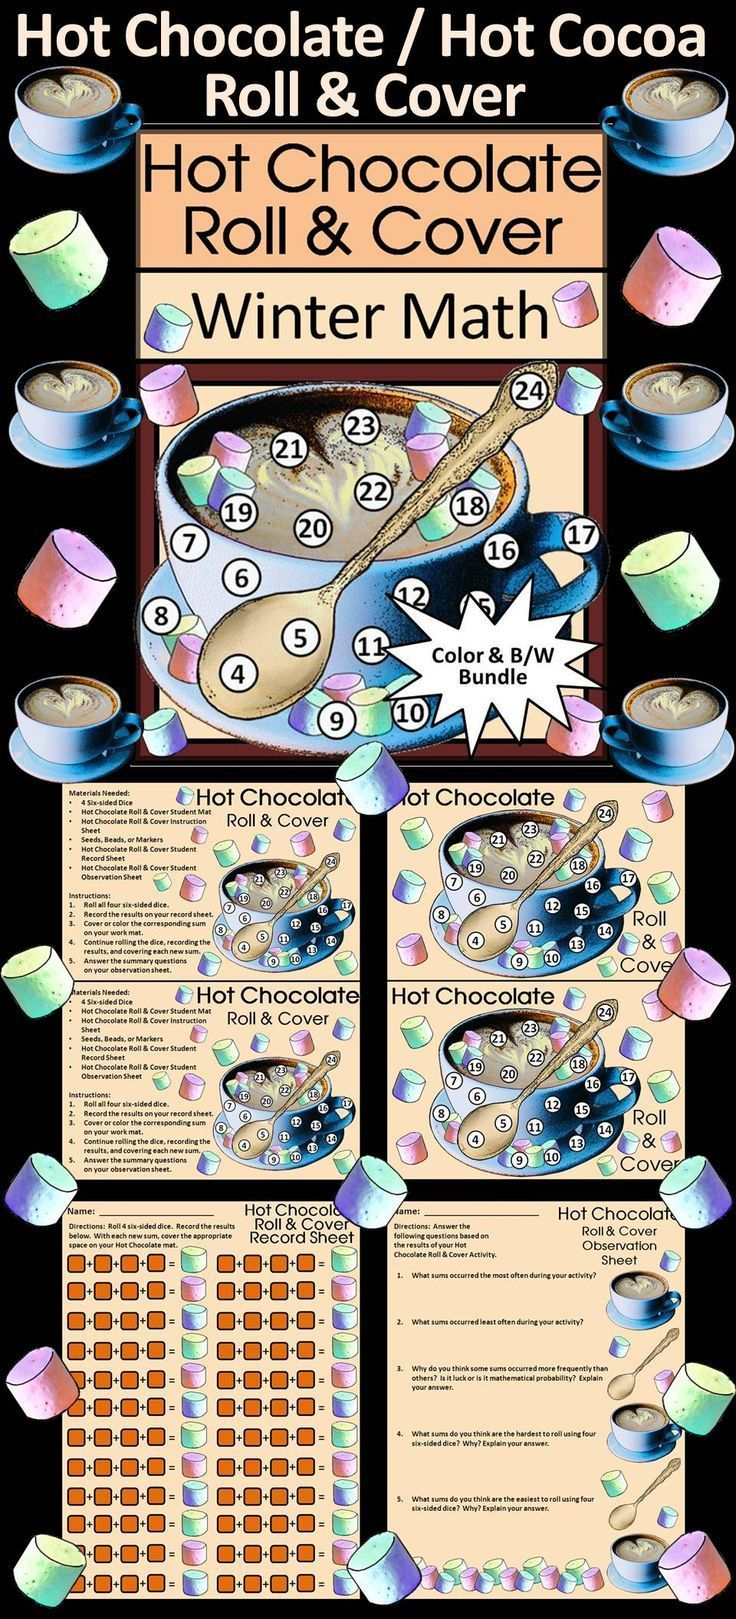 Hot Chocolate / Hot Cocoa Roll & Cover Winter Math Activity: Give your students a fun and festive way to practice addition in series in a hands-on way using 4 six-sided dice and seeds, beads, or other small items as counters. Hot Chocolate / Hot Cocoa Roll & Cover Winter Math Activity Includes: * Student Work Mat * Instruction Set * Student Record Sheet * Student Observation Sheet #Hot #Chocolate #Cocoa #Winter #Math #Dice #Activities #Teacherspayteachers